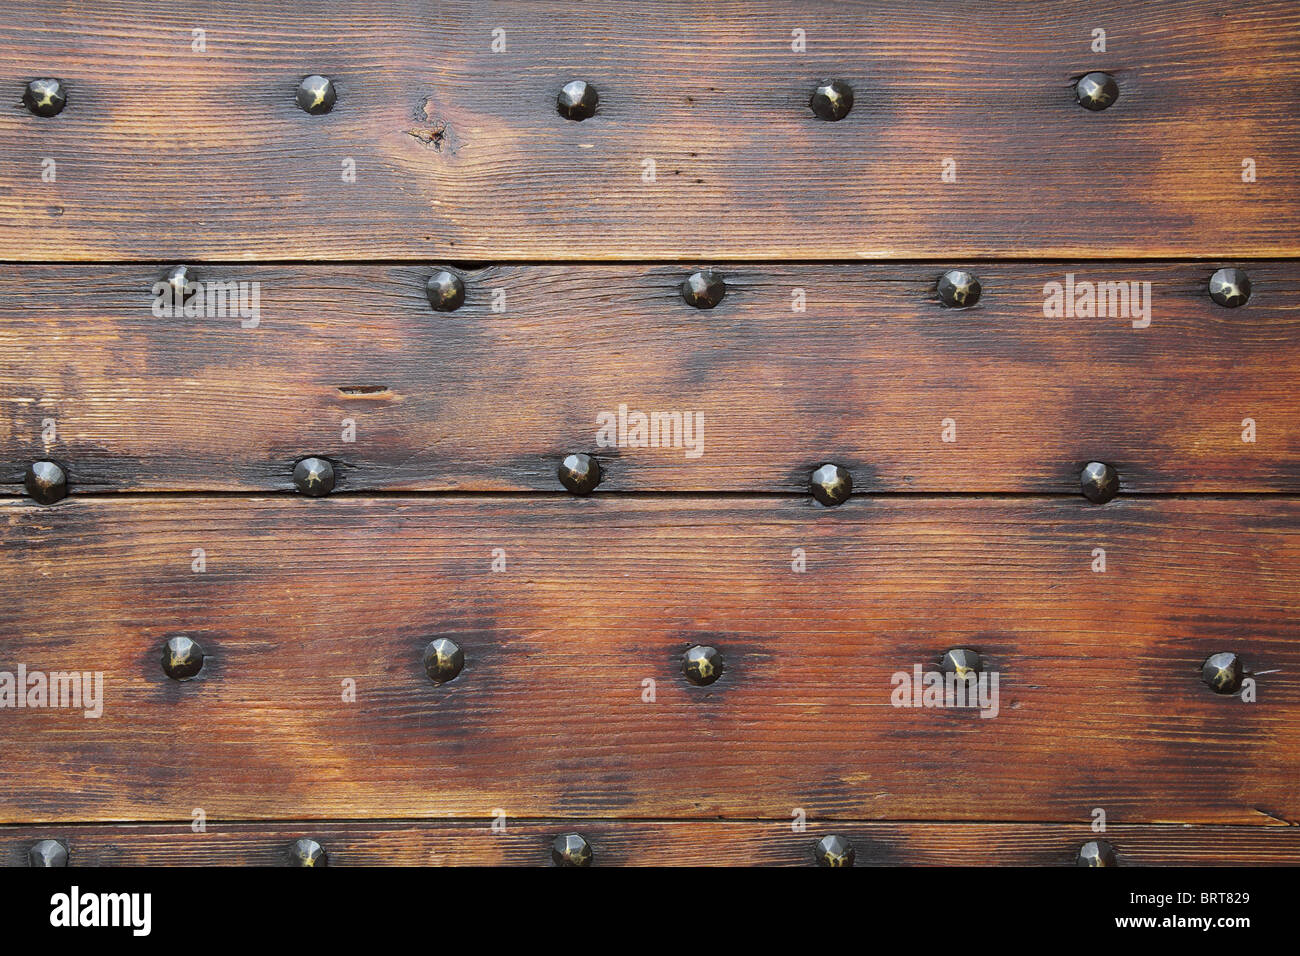 Wooden surface with nails, a background - Stock Image